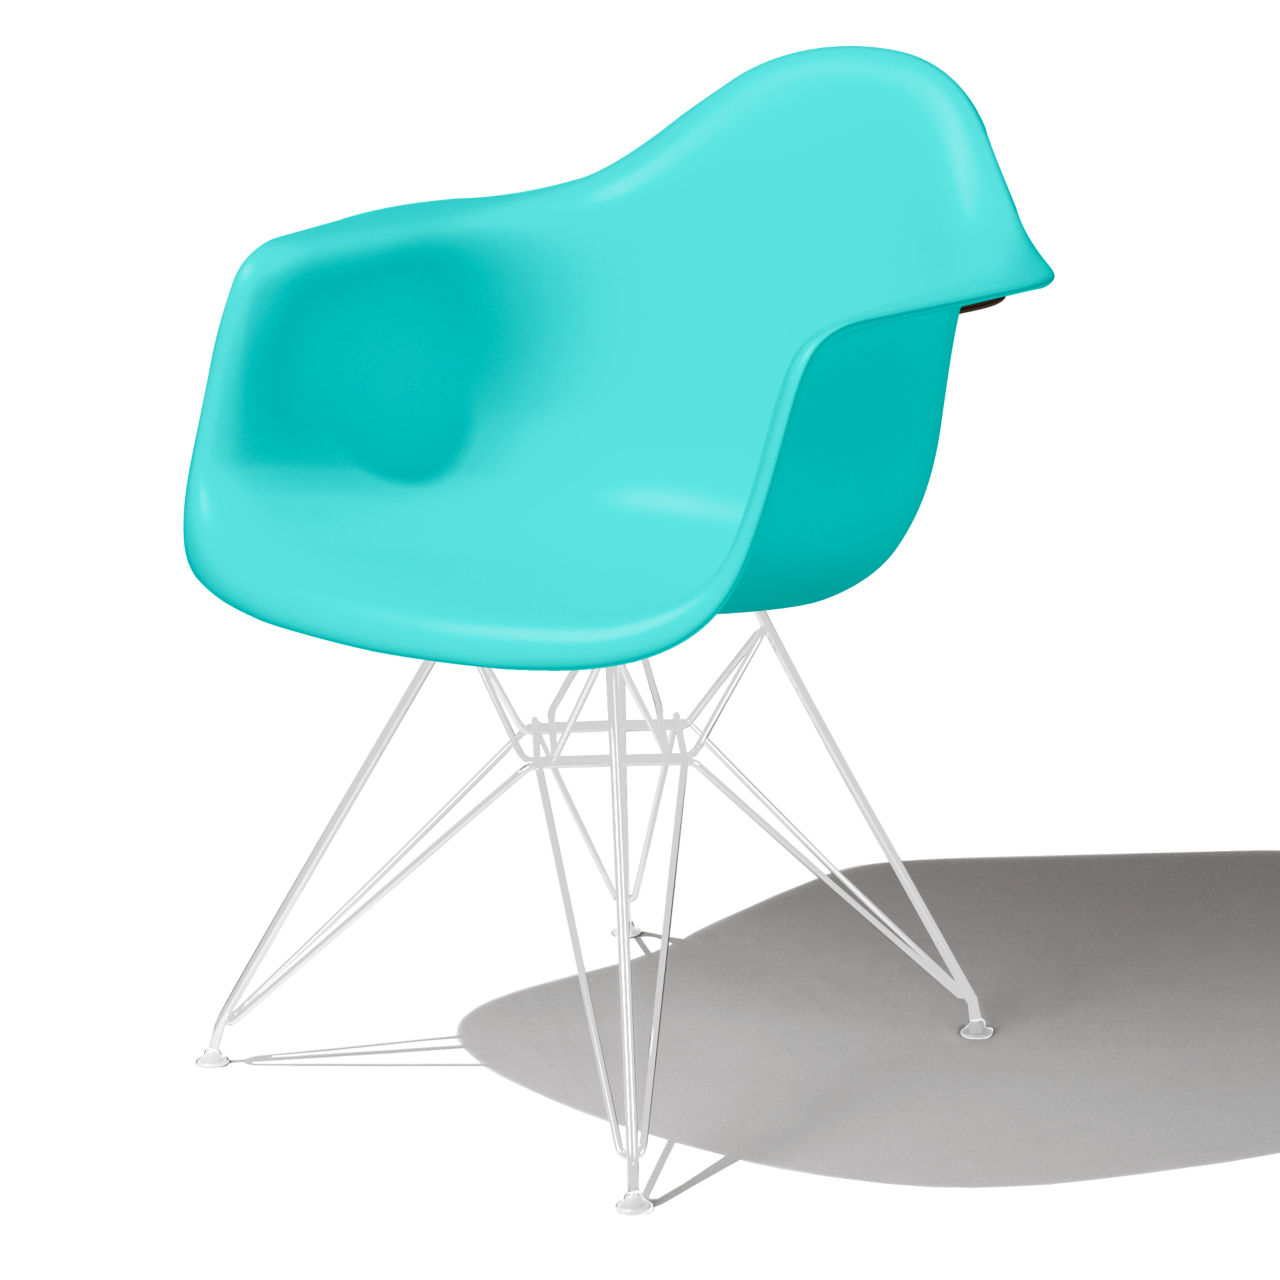 Eames Molded Plastic Armchair in Aquasky by Herman Miller